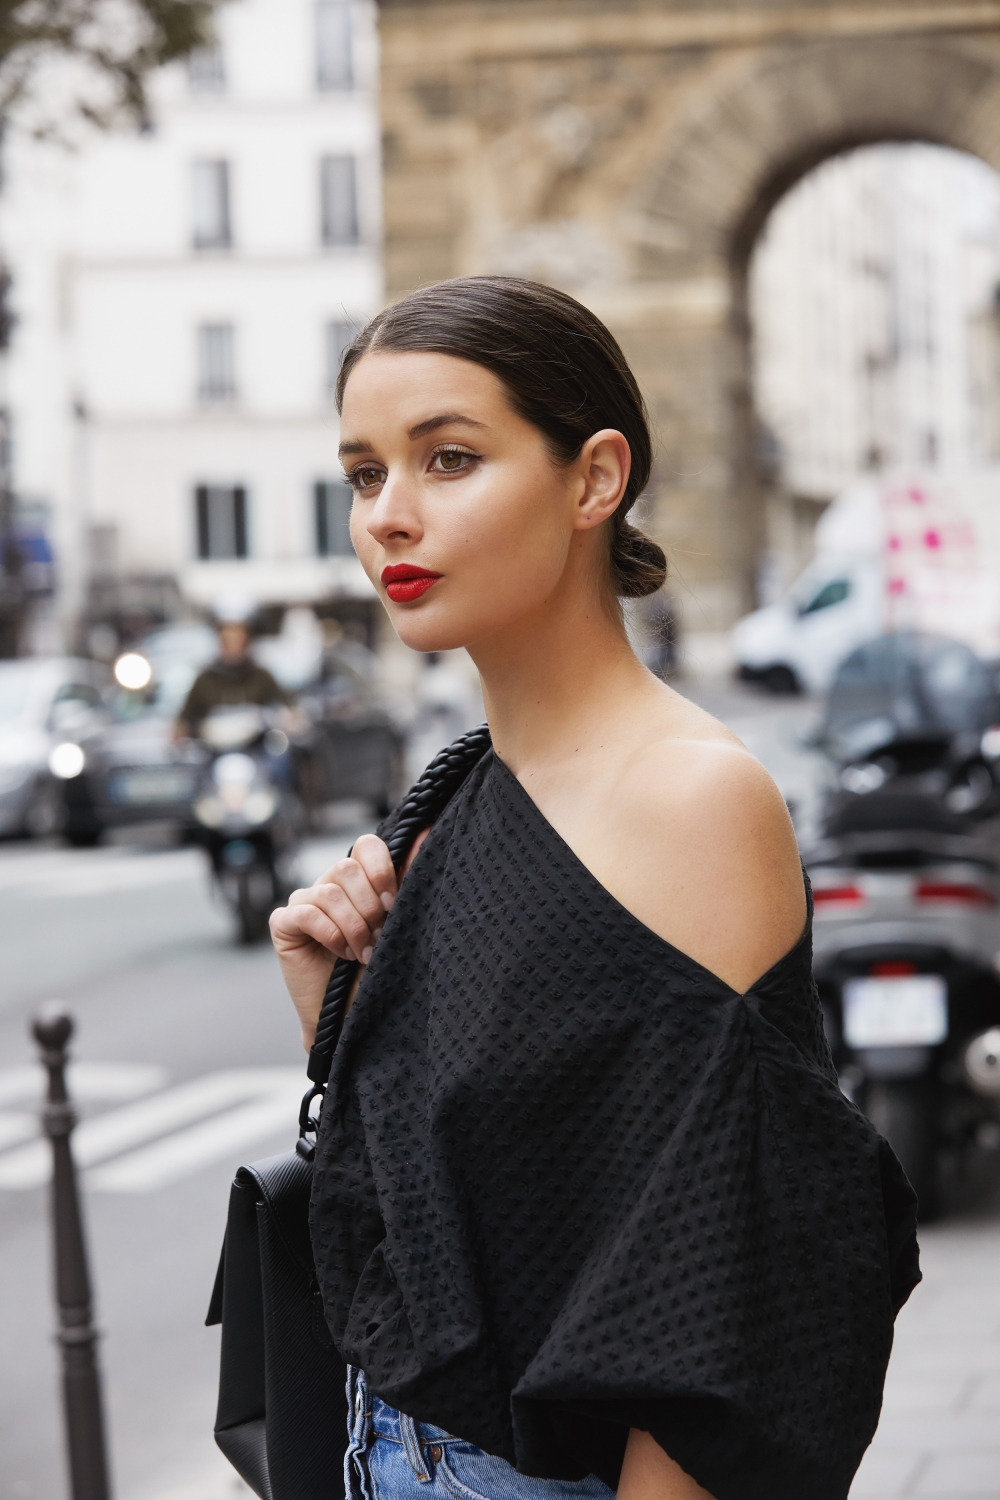 Black and Denim in Paris | Red Lipstick | Beauty | HarperandHarley